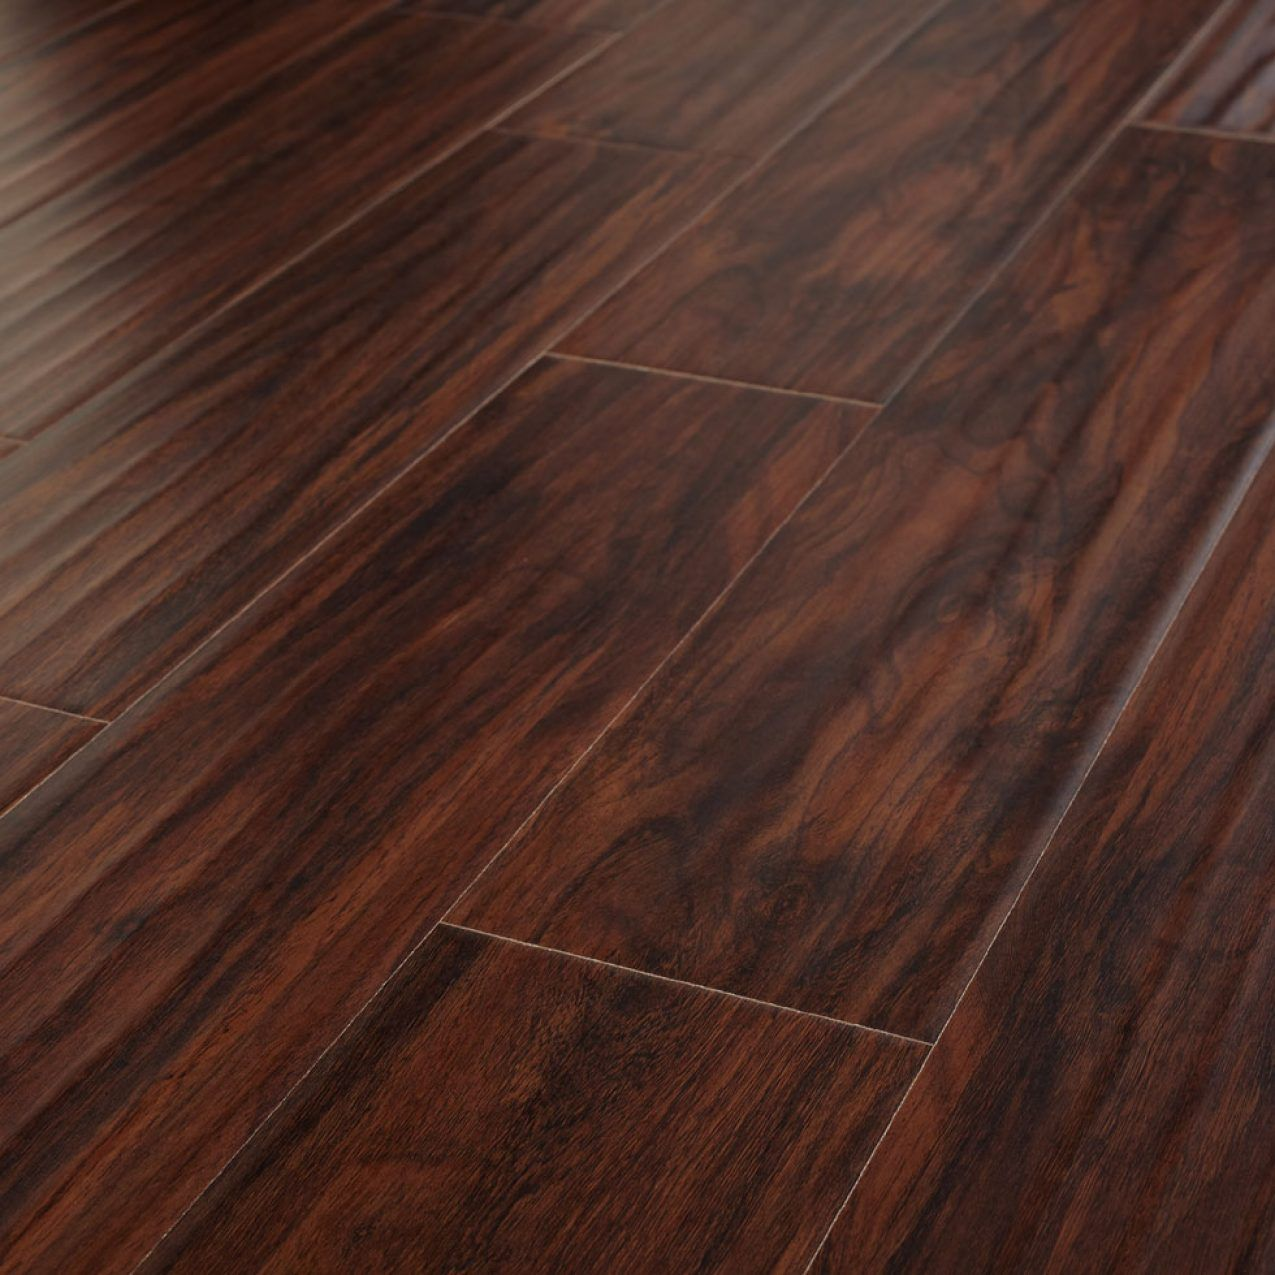 Hank Hand Scraped Hickory Flooring from Evoke. This is the nicest fake  flooring I'